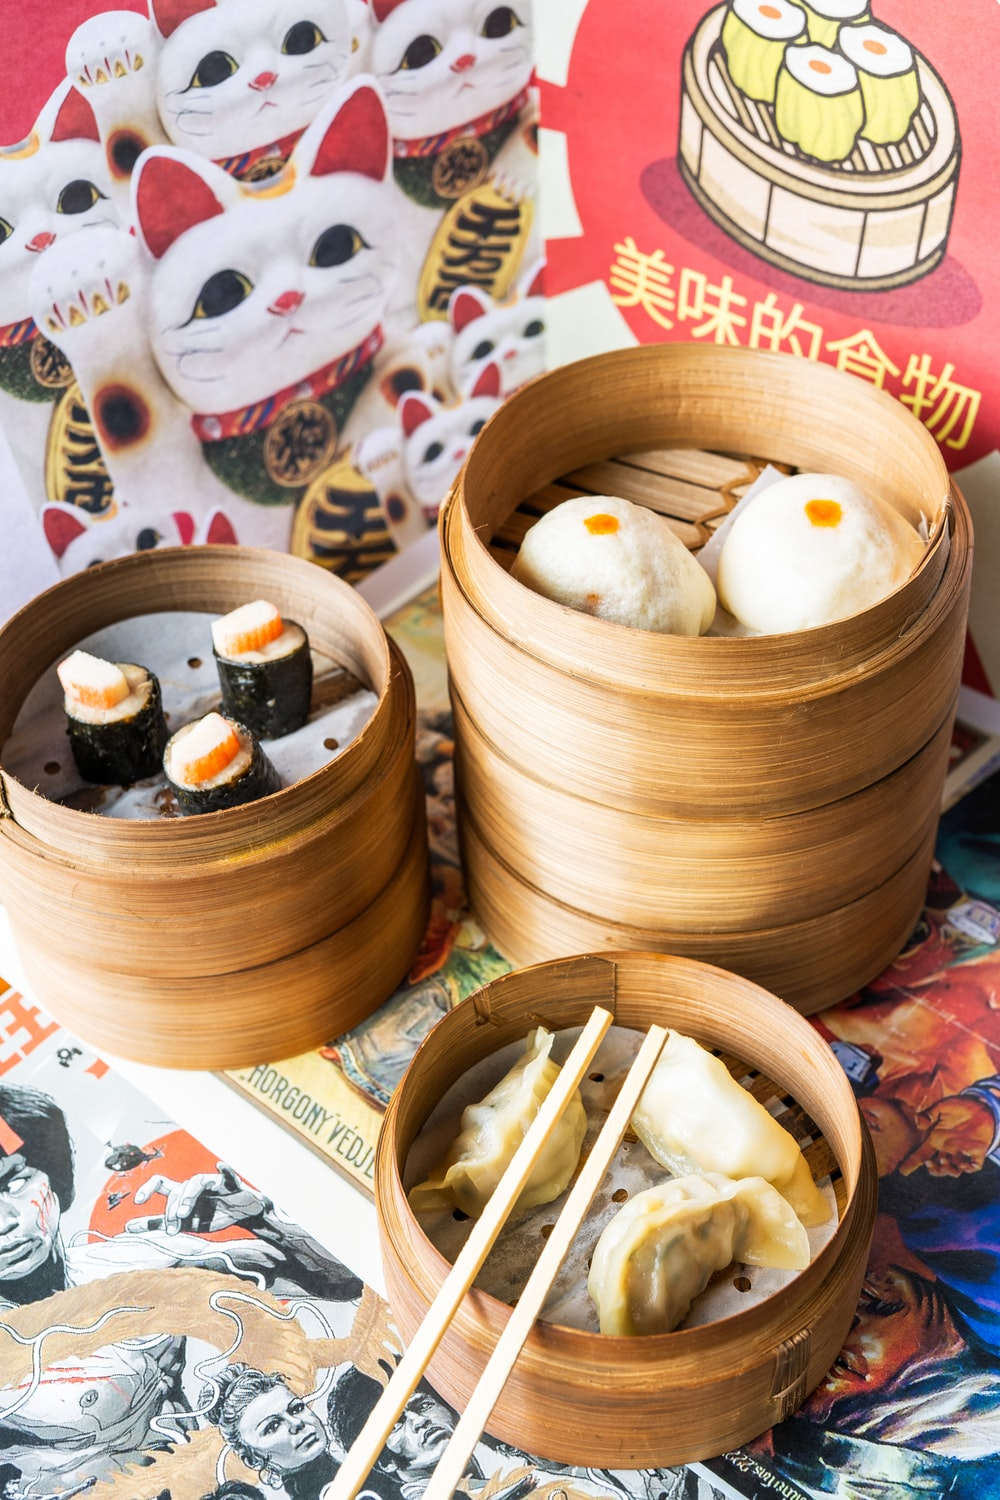 white round food on brown wooden bowl